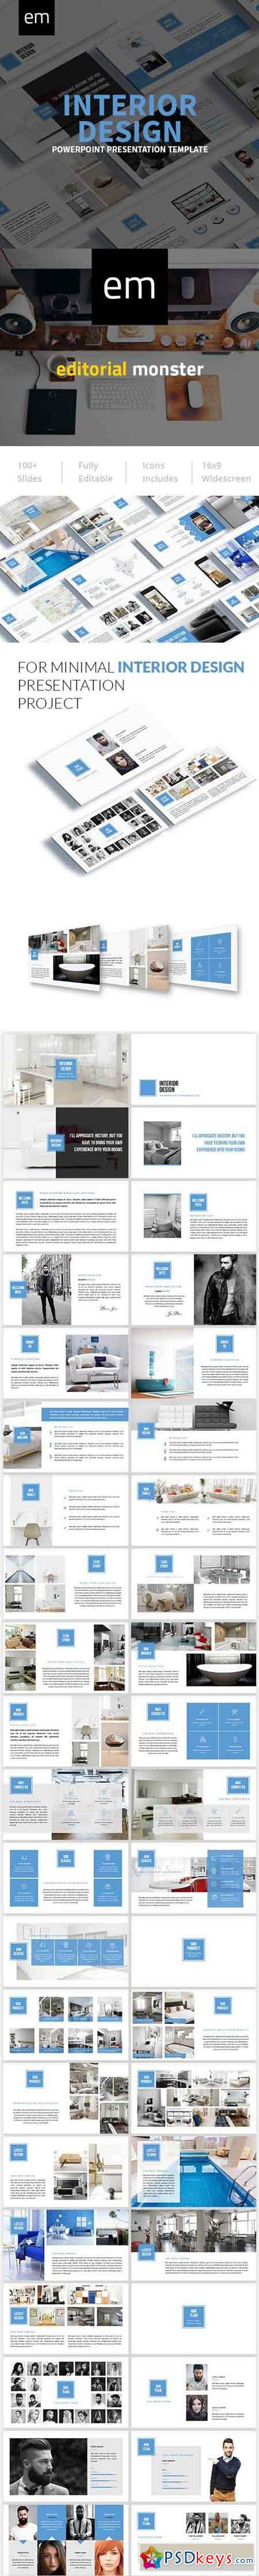 Interior Design Powerpoint Presentation Template 20004667 Free